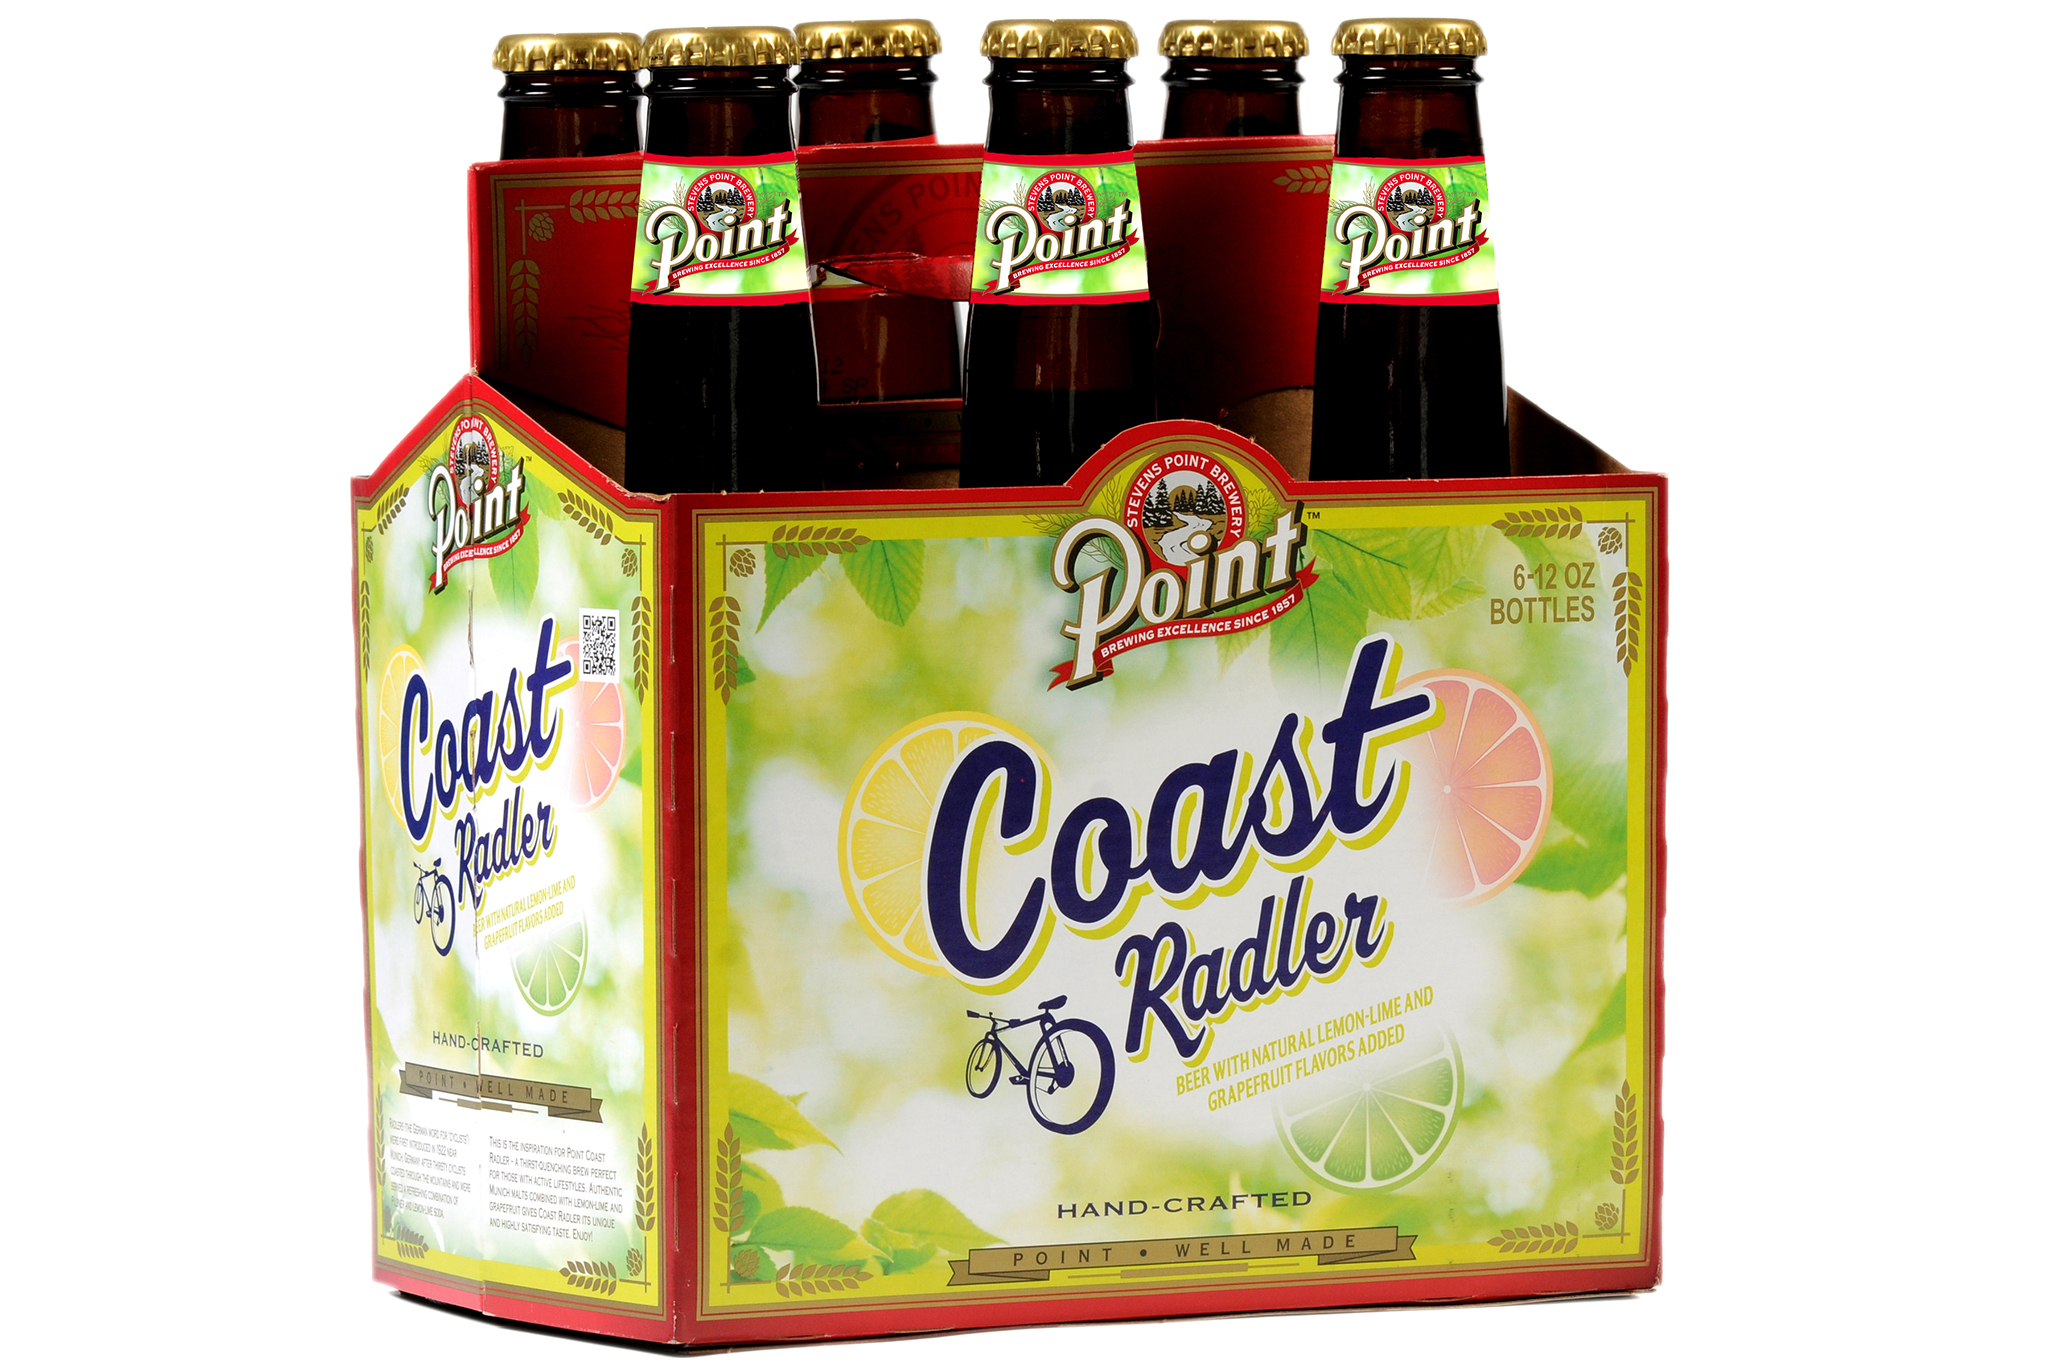 Coast Radler from Point Beer